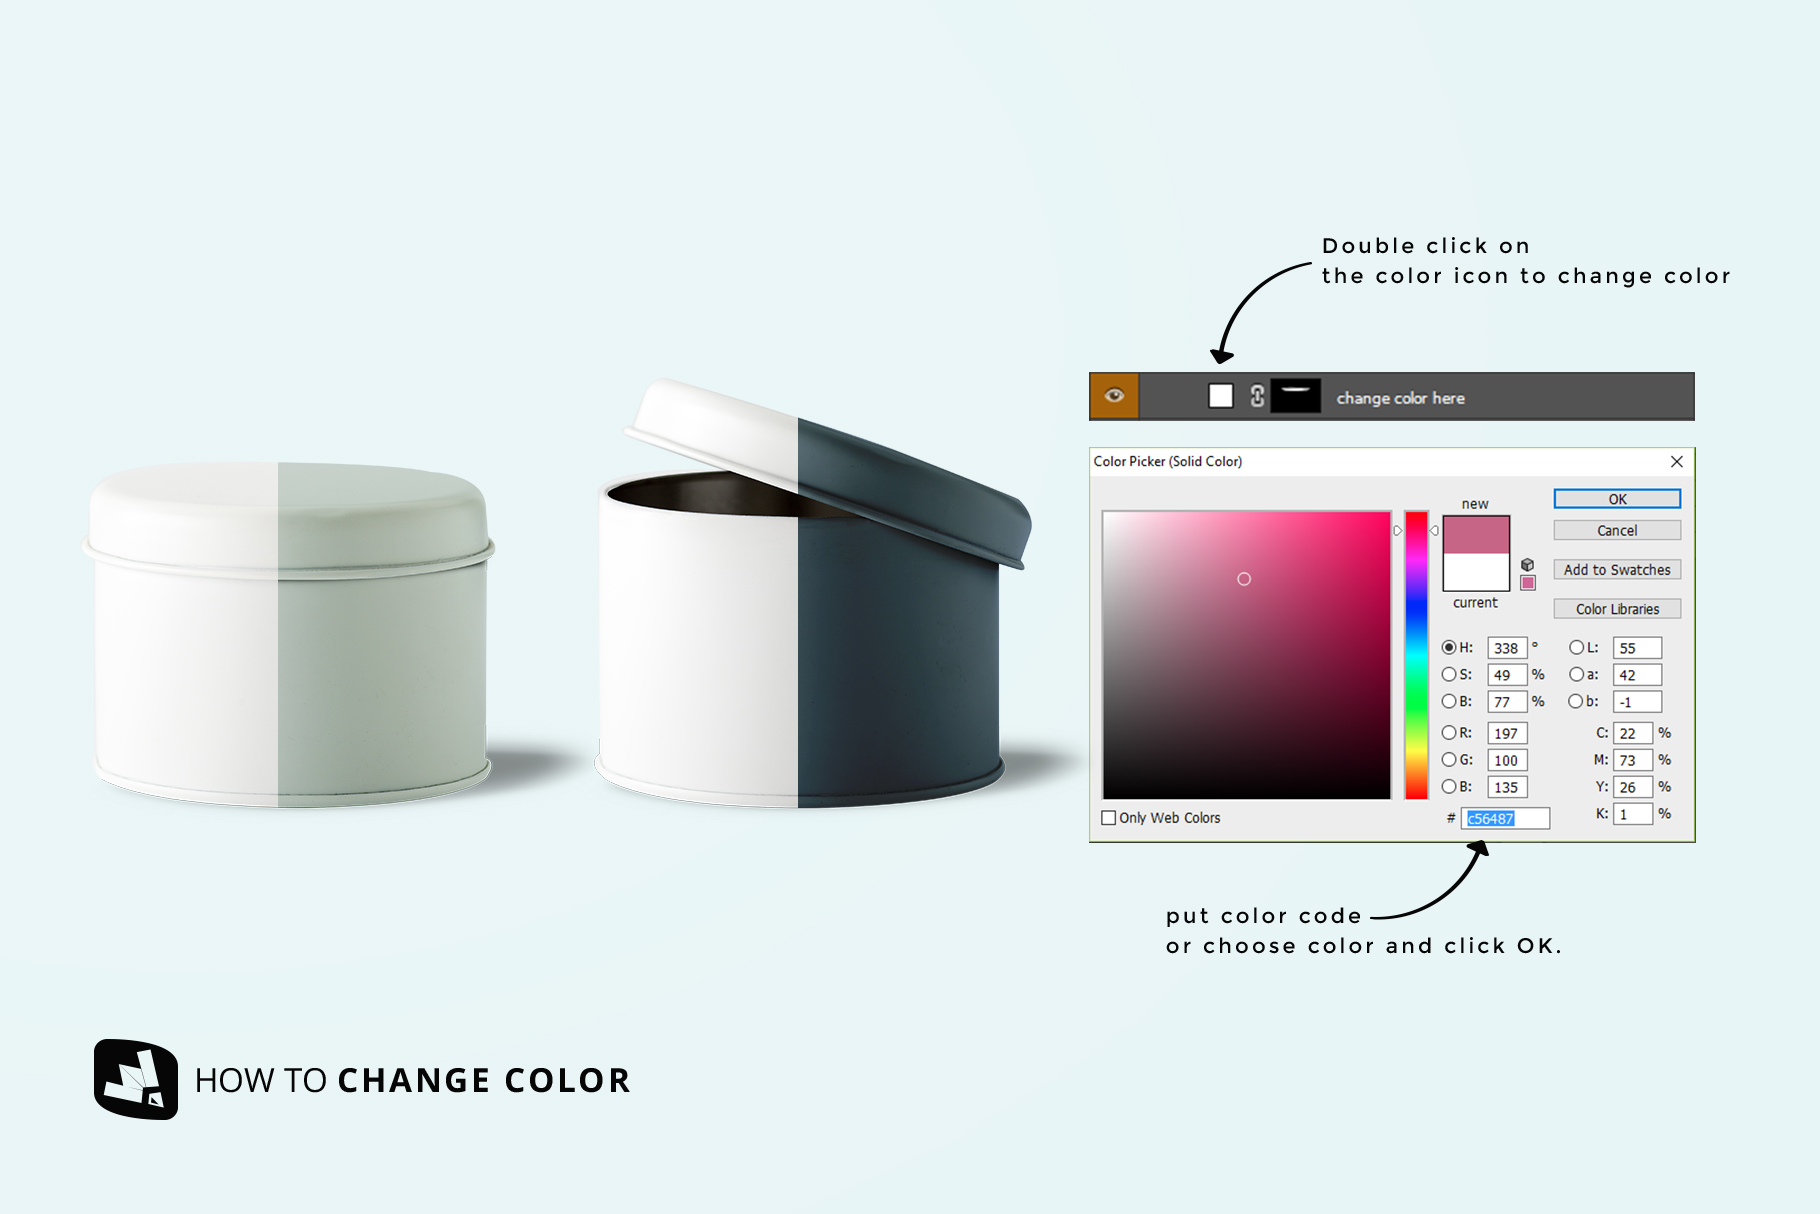 how to change color of the front view cylindrical container mockup